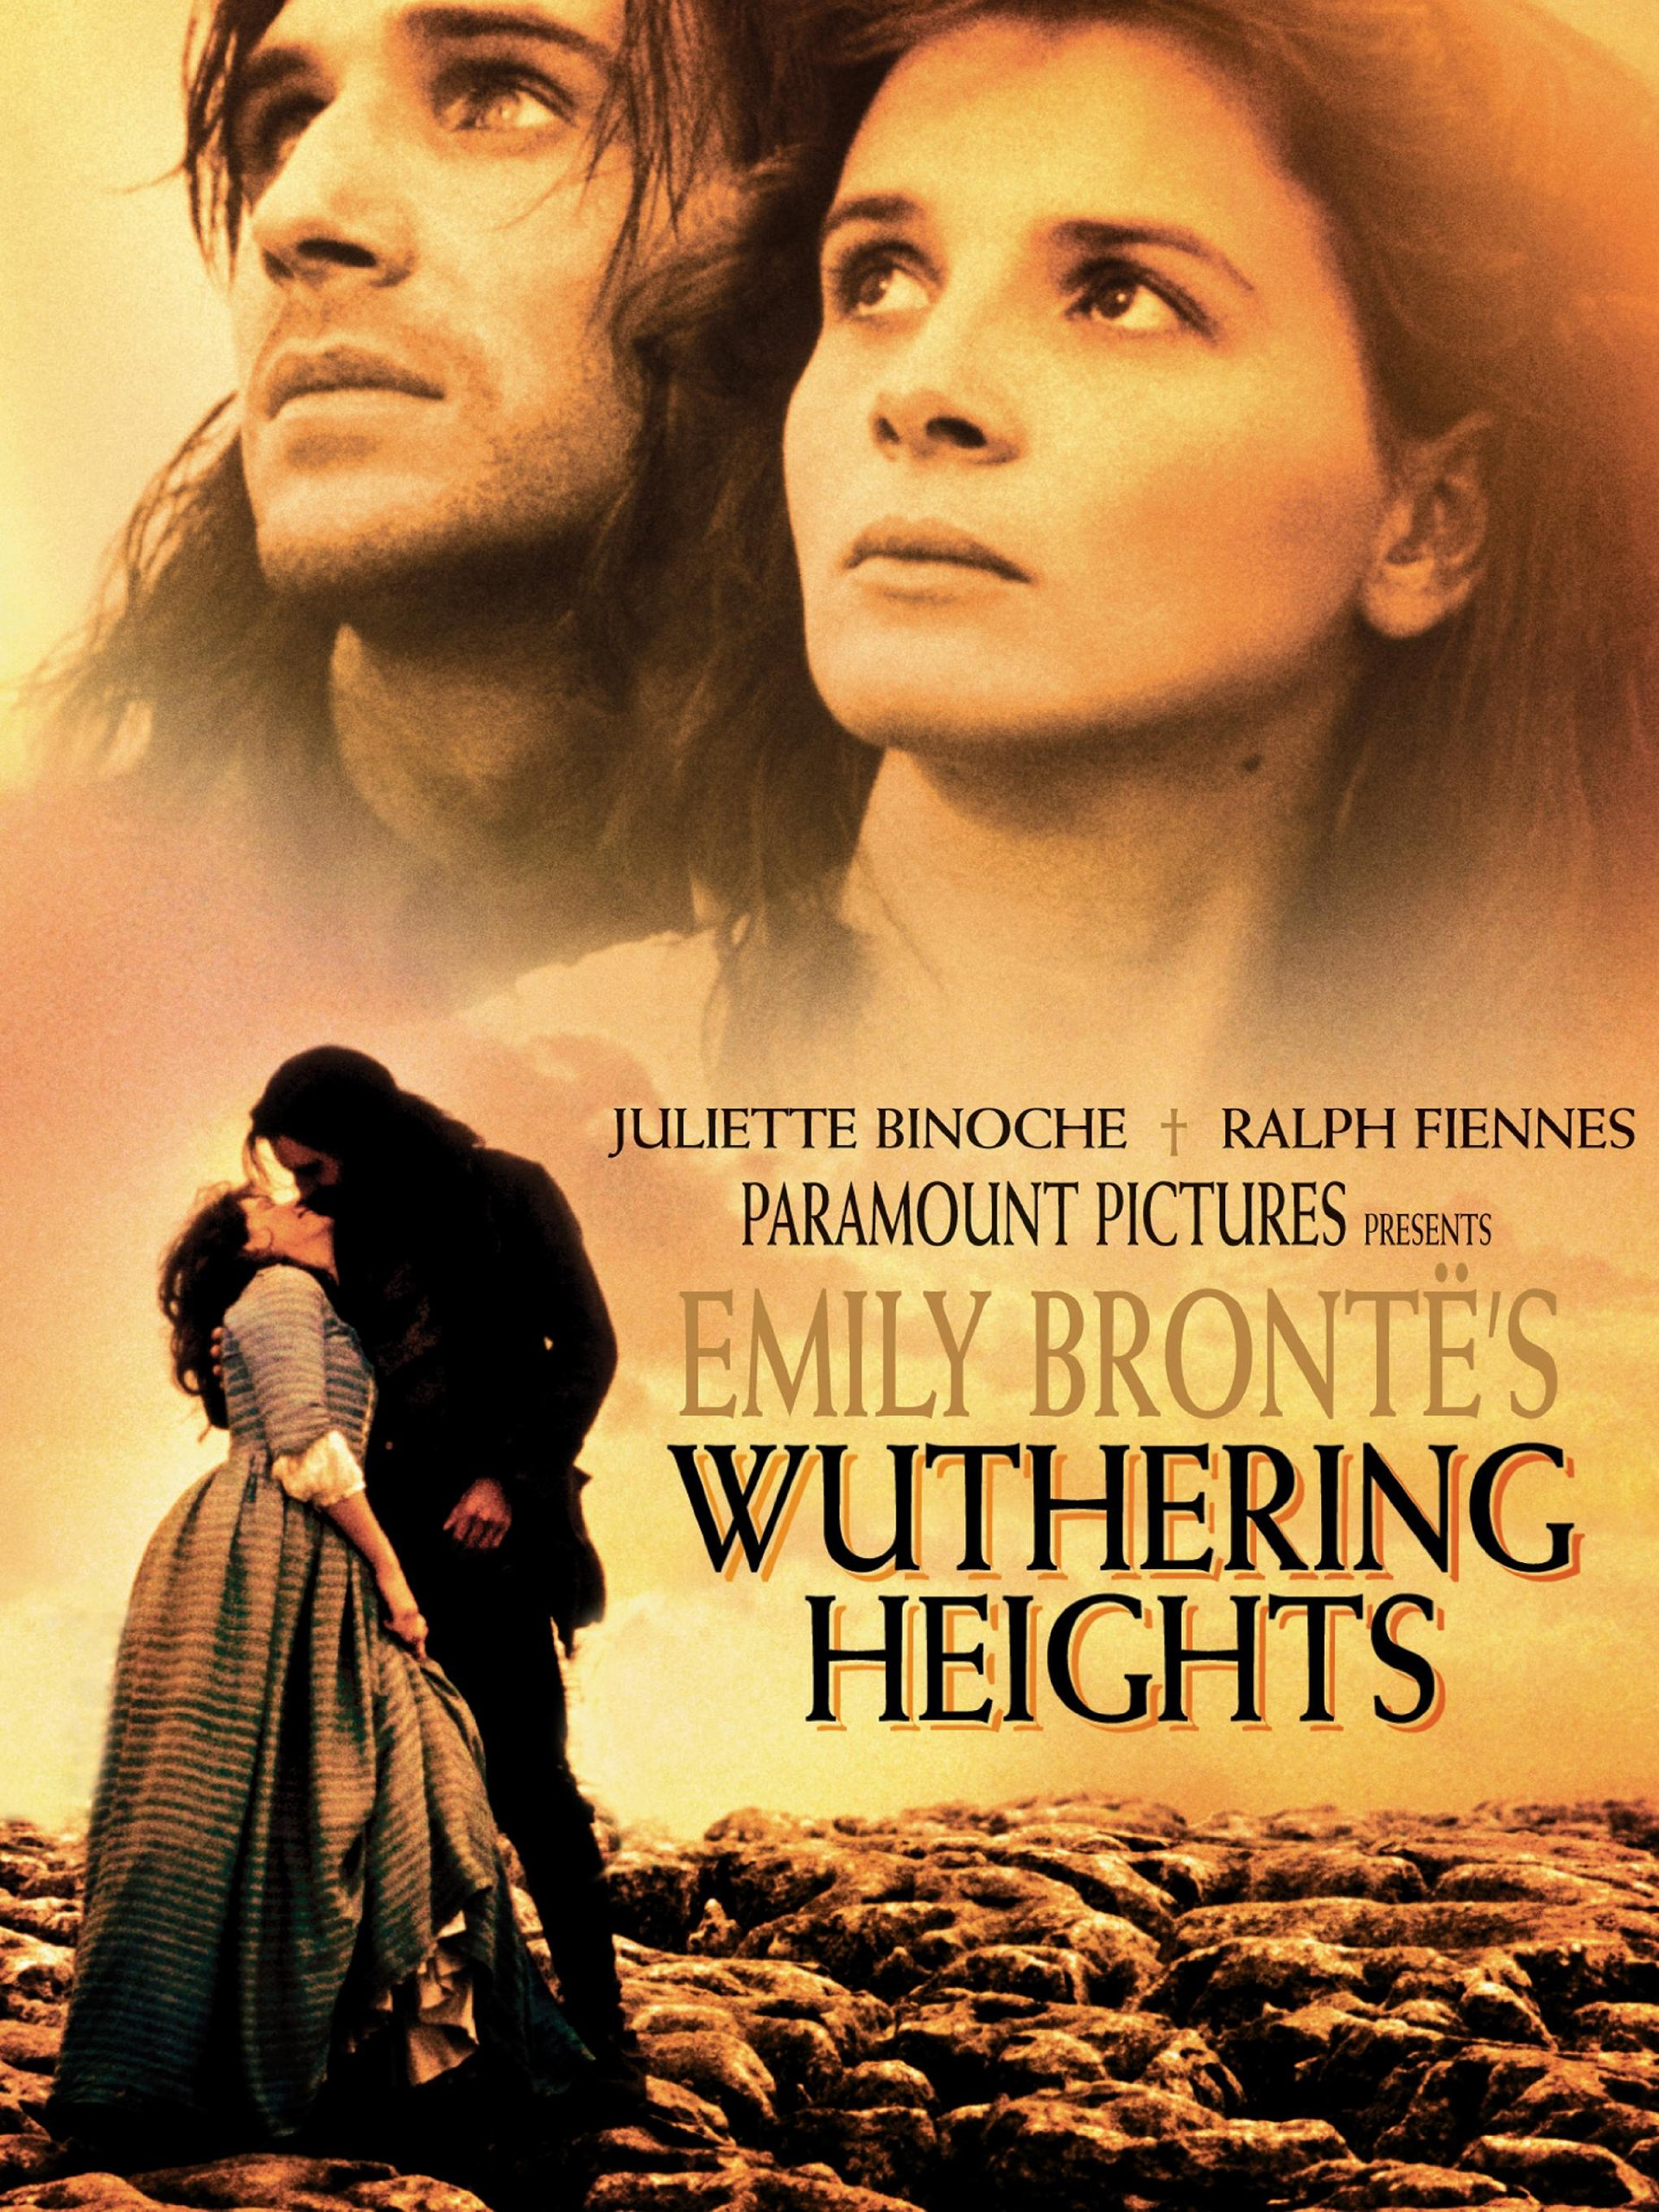 Image result for wuthering heights movie